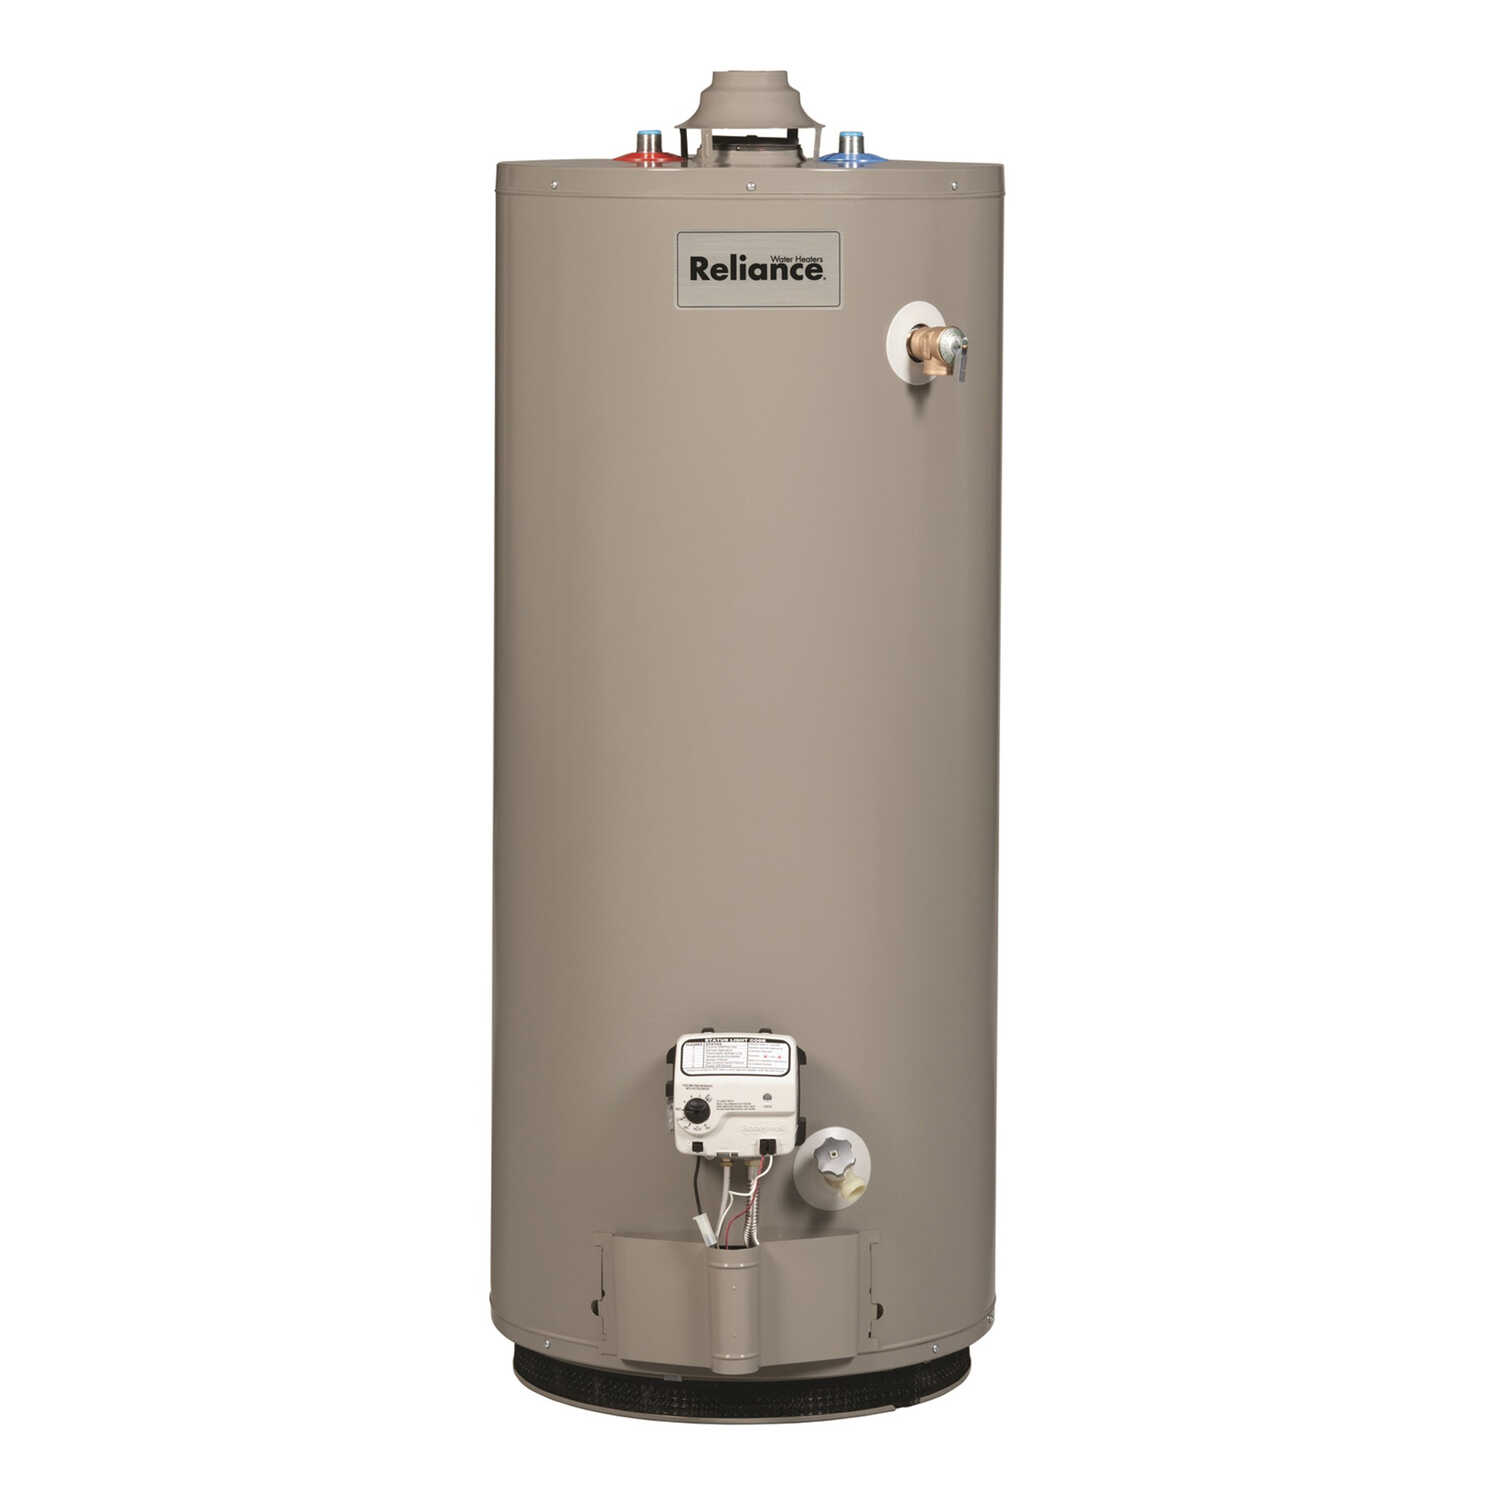 Reliance  Water Heater  Natural Gas  30 gal. 50 in. H x 20 in. L x 20 in. W